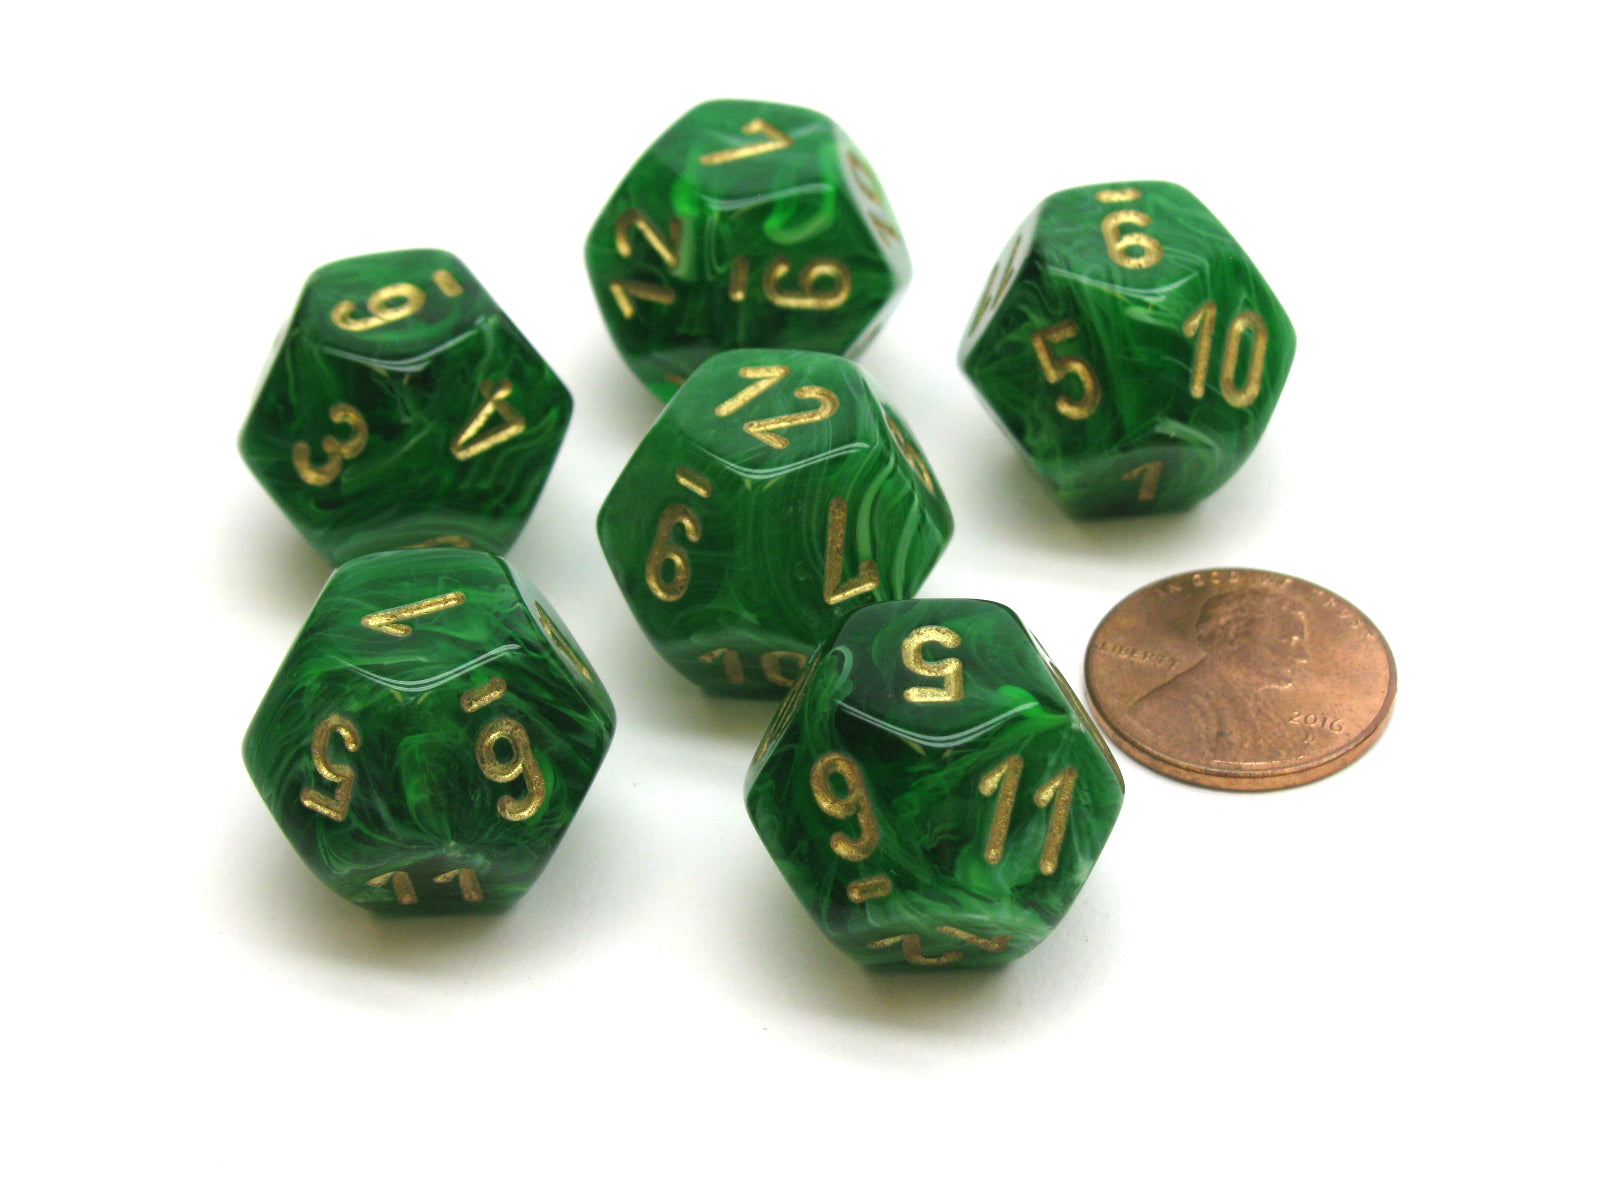 Vortex 18mm 12 Sided D12 Chessex Dice, 6 Pieces -  Green with Gold